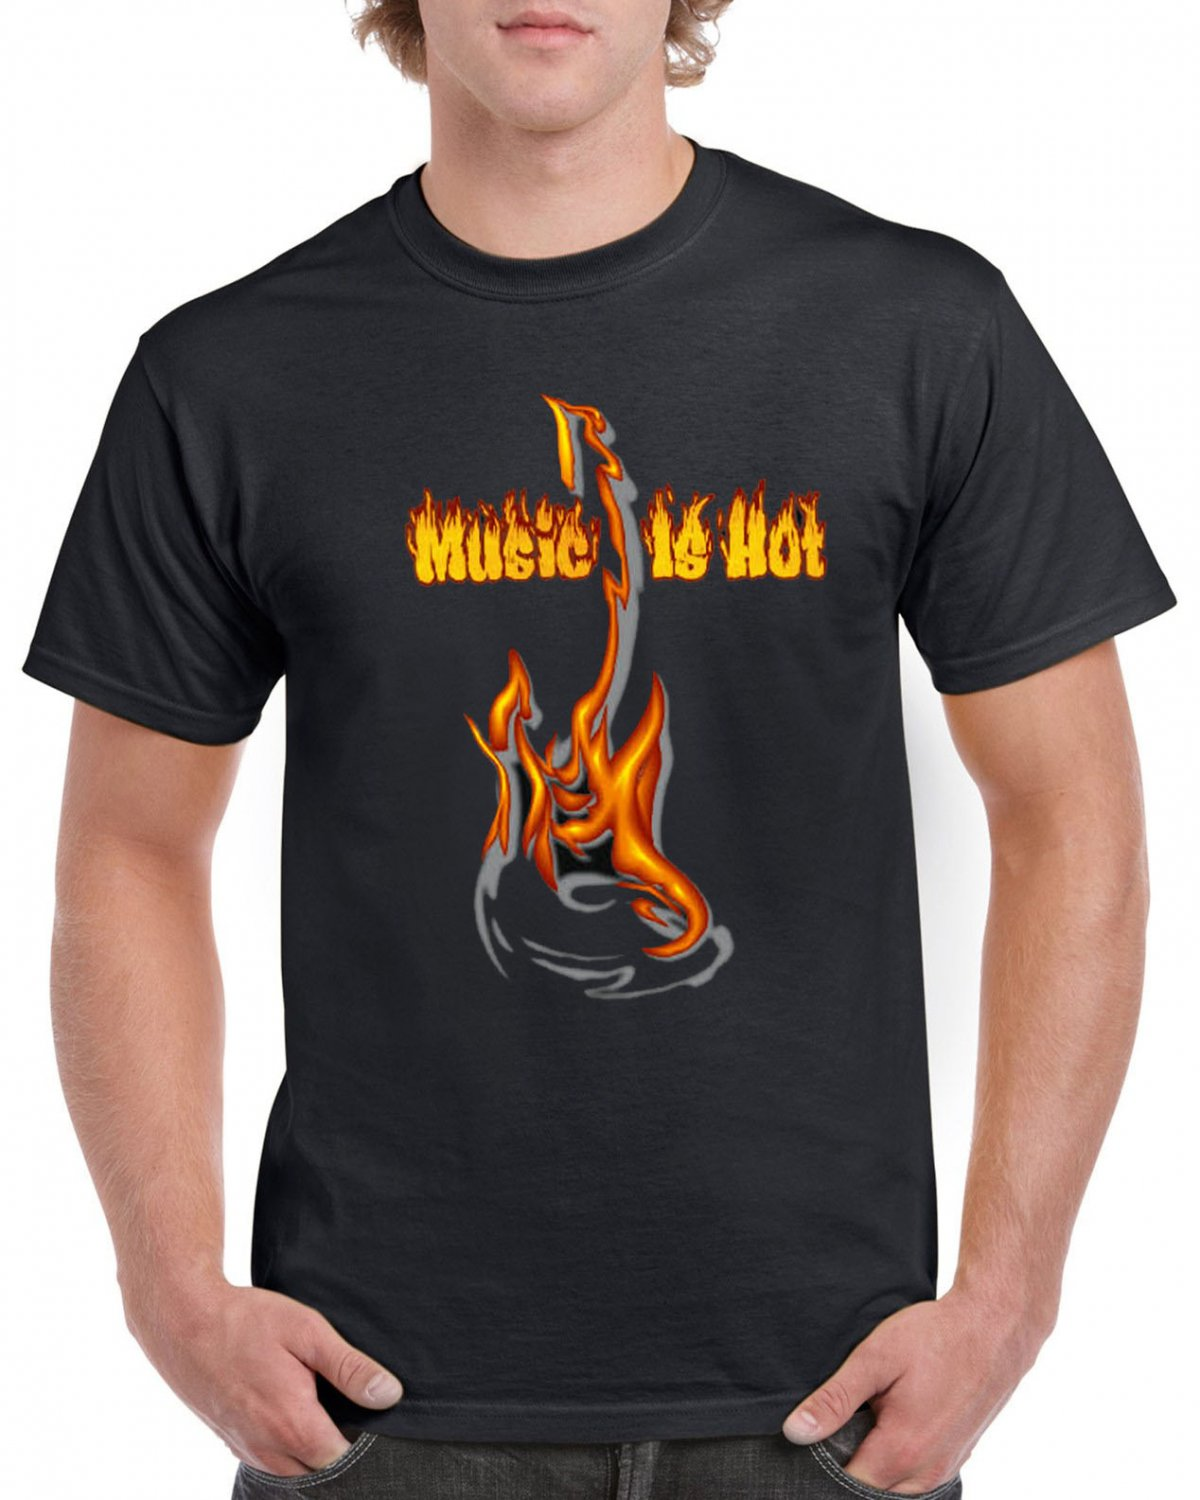 Music Is Hot T-shirt Guitar In Flames Rock Heavy Metal Tshirt Cool Festival Party Top Tee